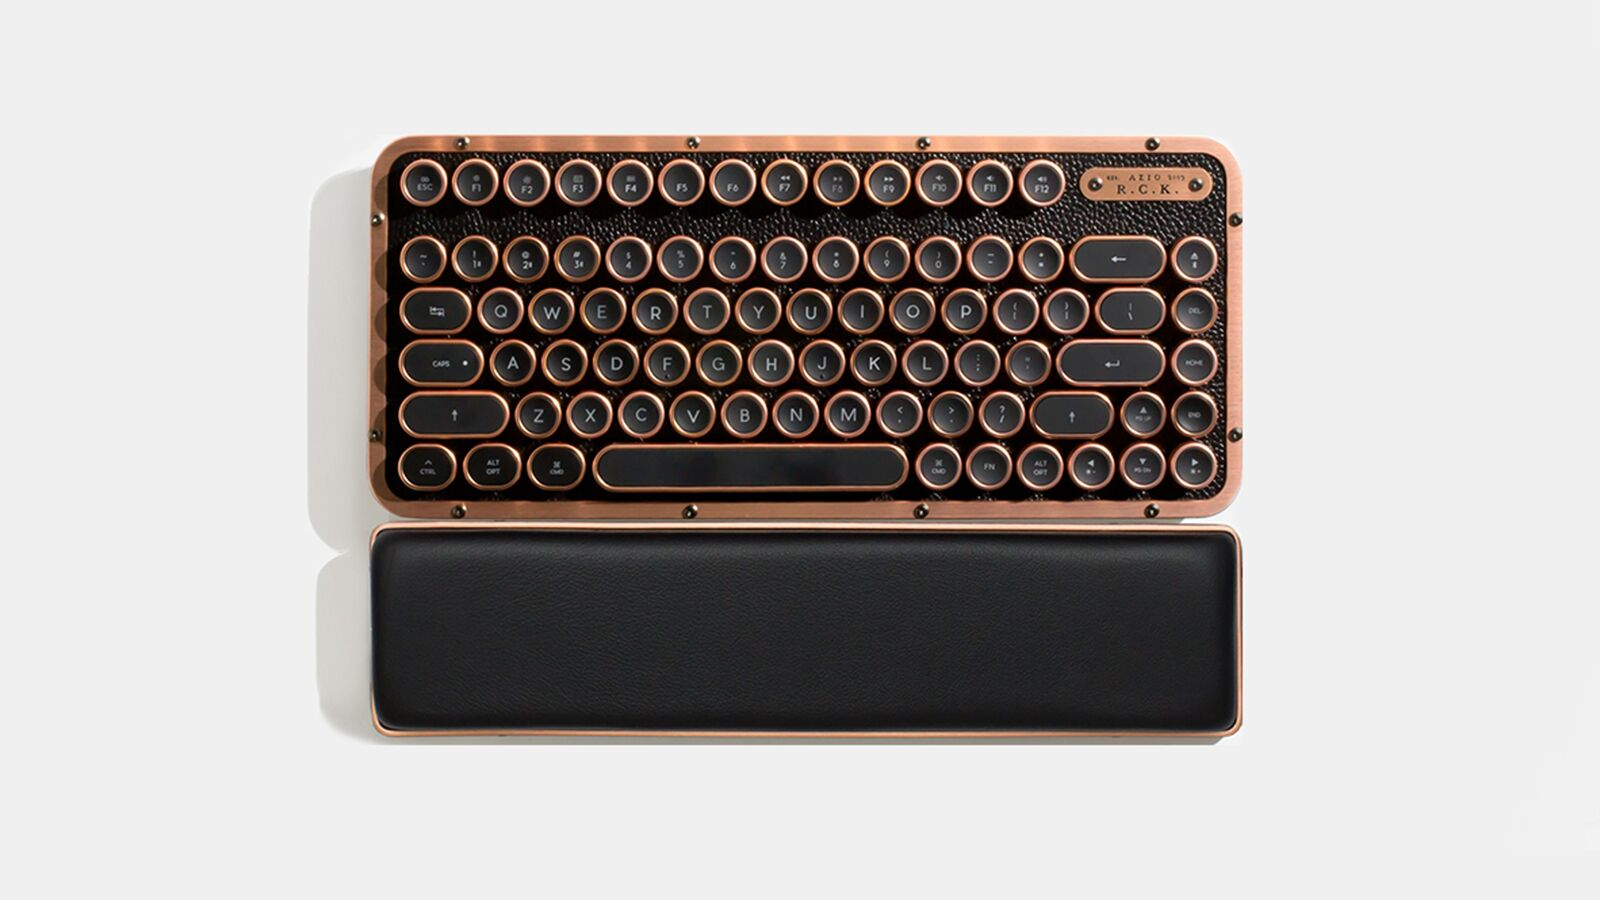 AZIO, RETRO, CLASSIC, COMPACT, Vintage, Typewriter, Bluetooth, &, USB, Backlit, Mechanical, Keyboard, -, Alloy, Leather, Trim, ARTISAN, -,